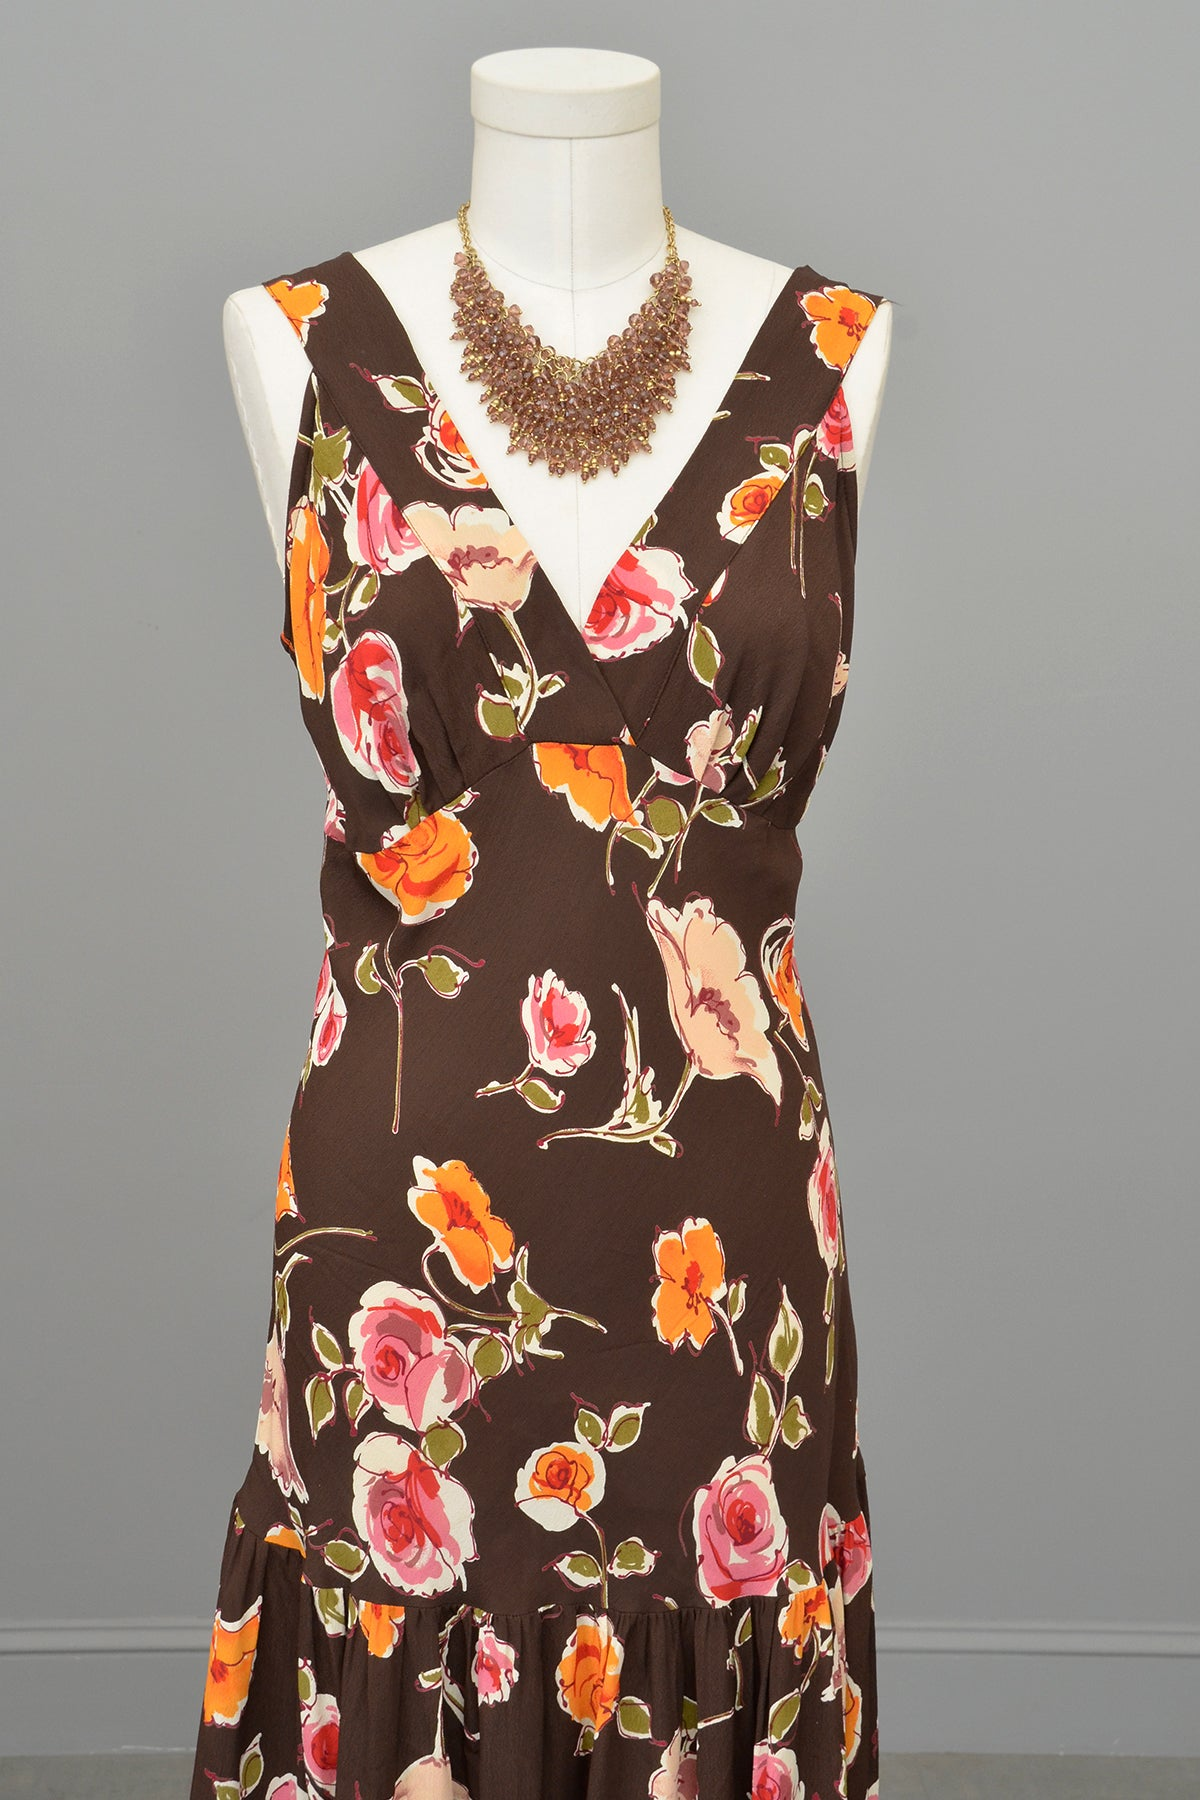 1970s or 90s doing 30s Brown Floral Print Bias Style Dress